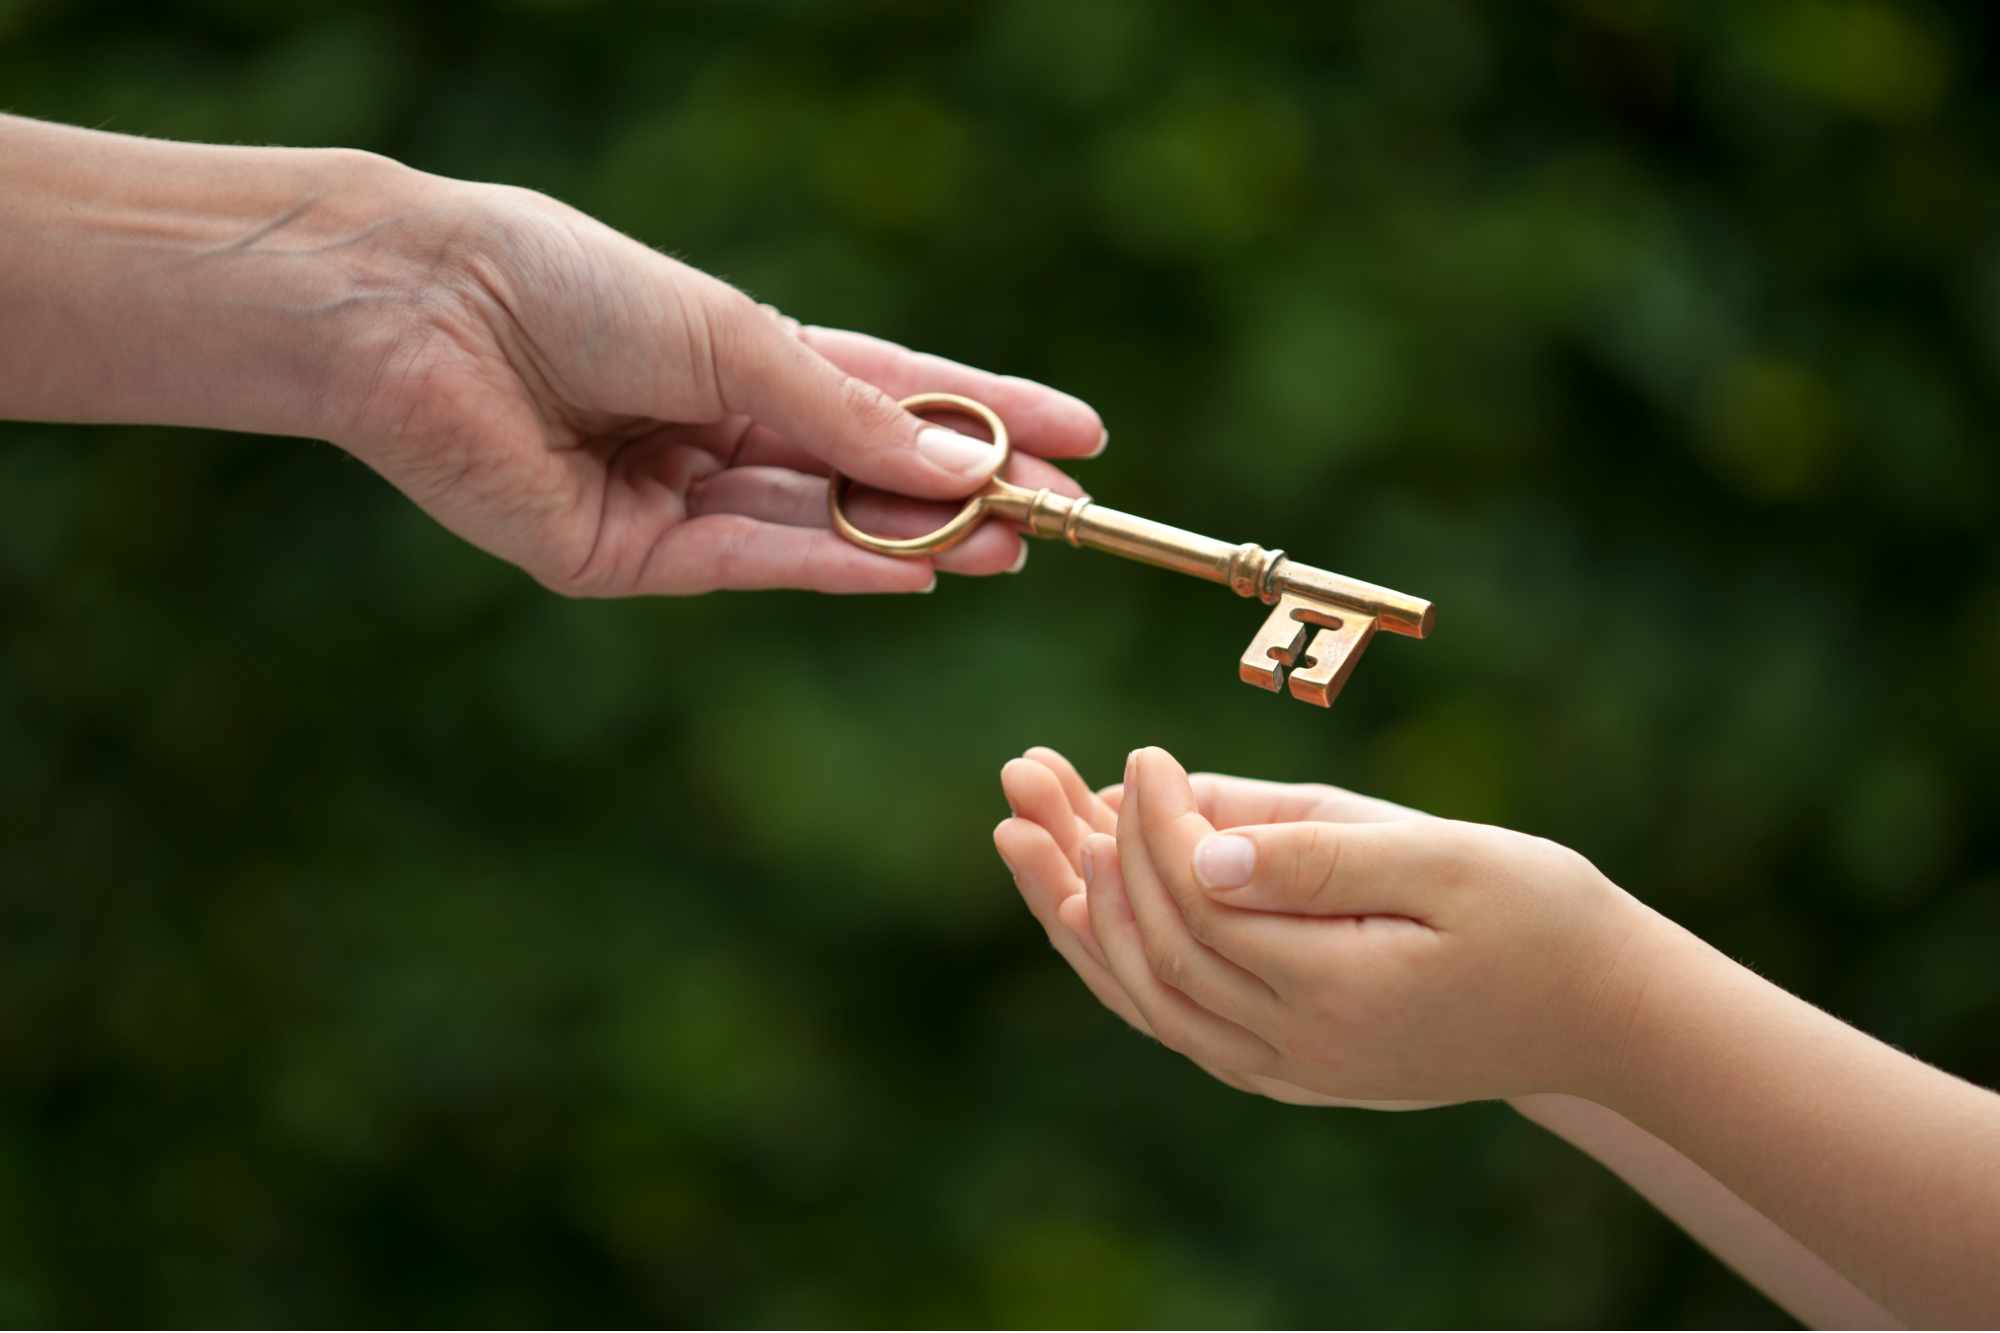 How to leave an inheritance? 4 principles for planning your legacy